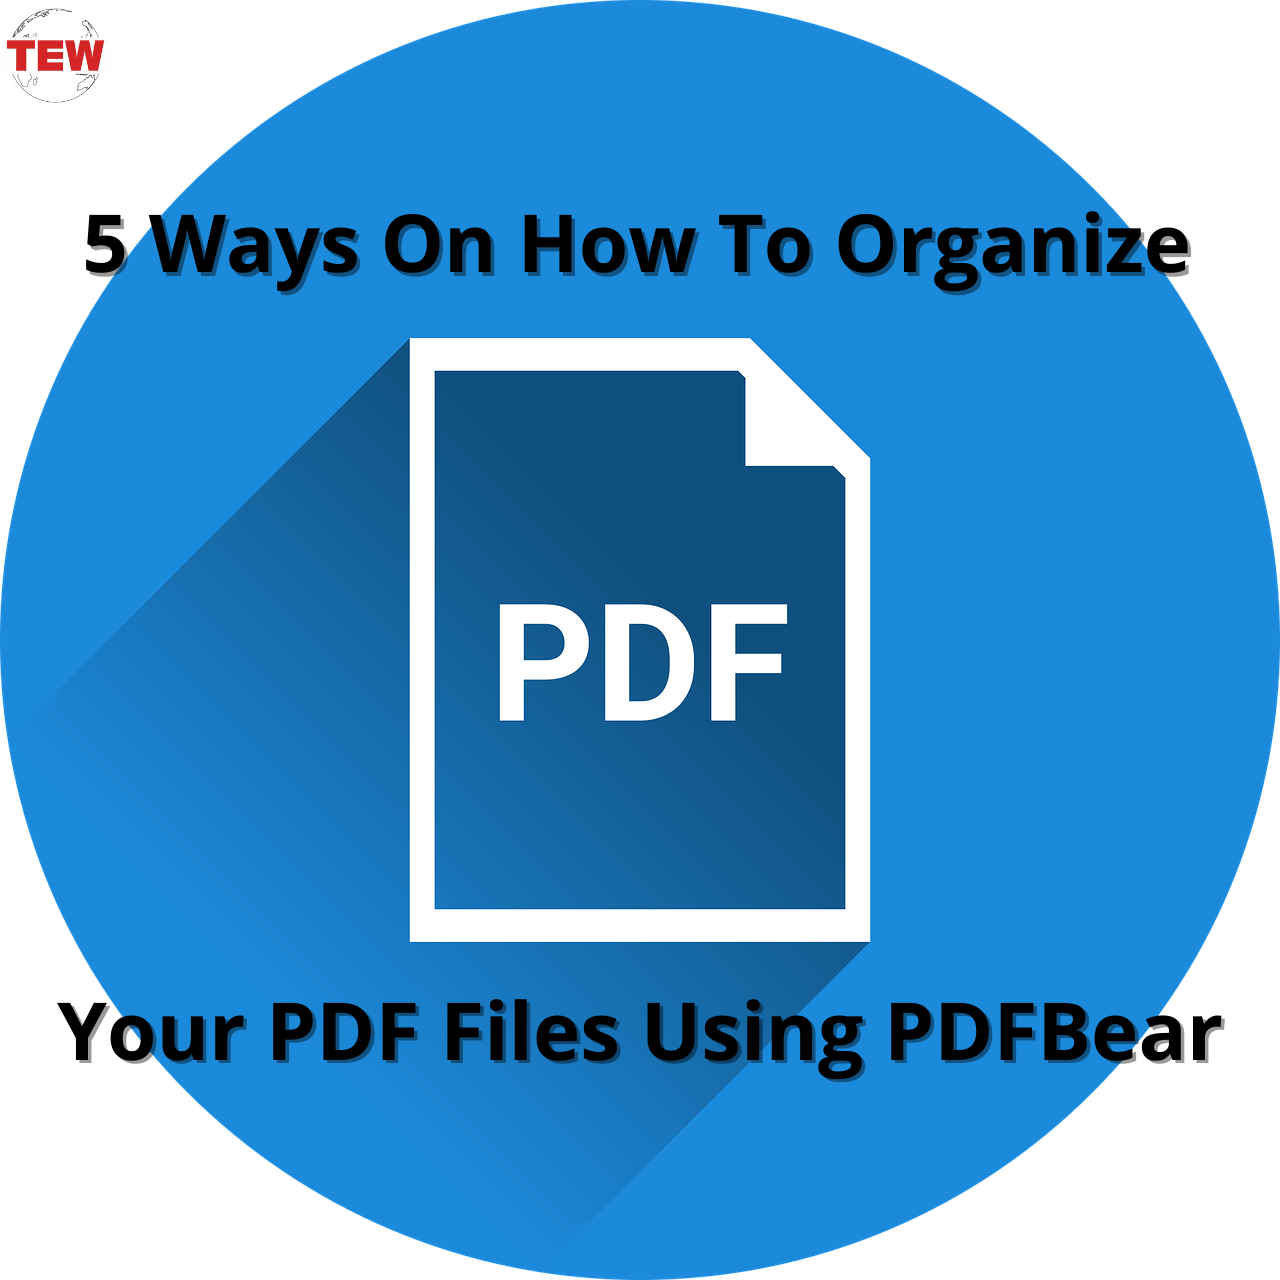 5 Ways On How To Organize Your PDF Files Using PDFBear